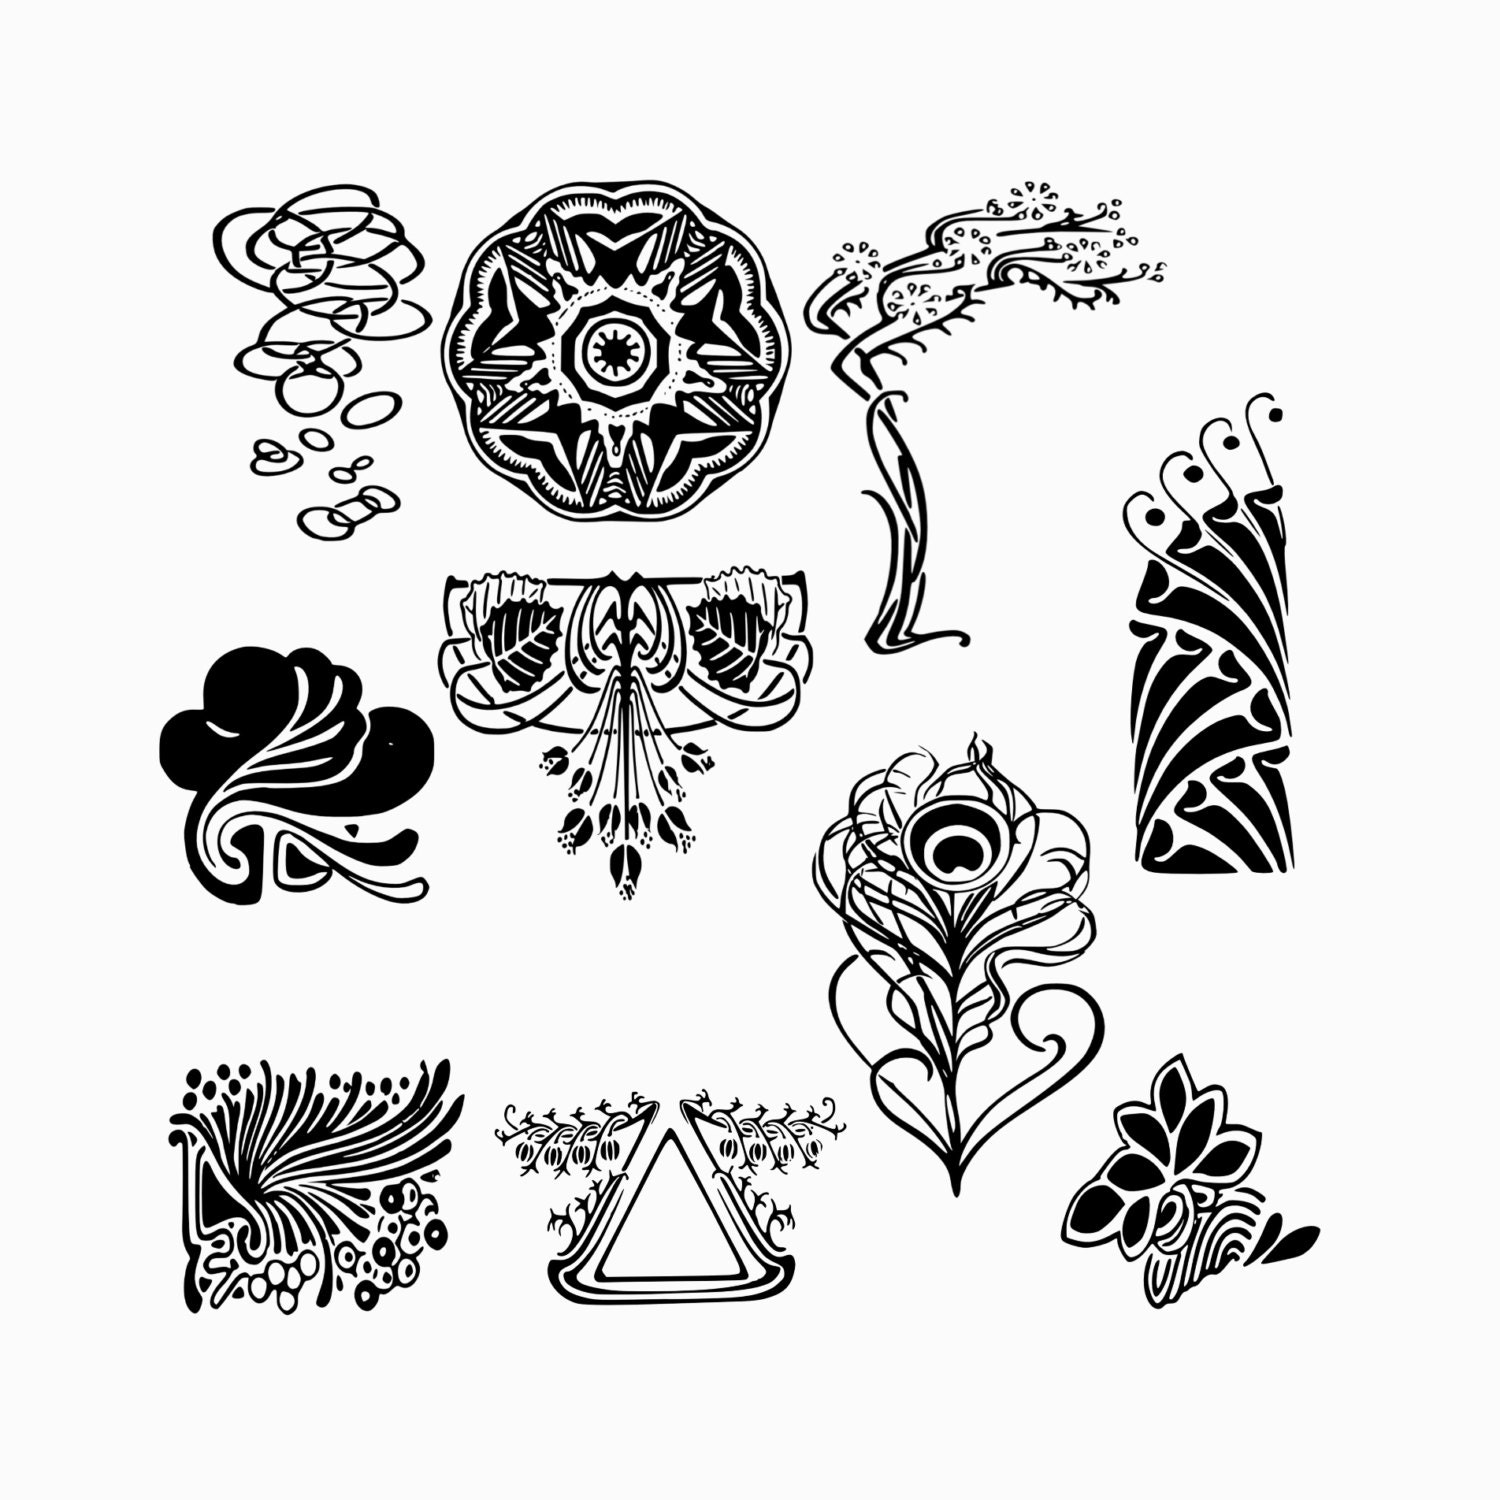 Art Deco Shapes Vector Floral Art Deco Shapes